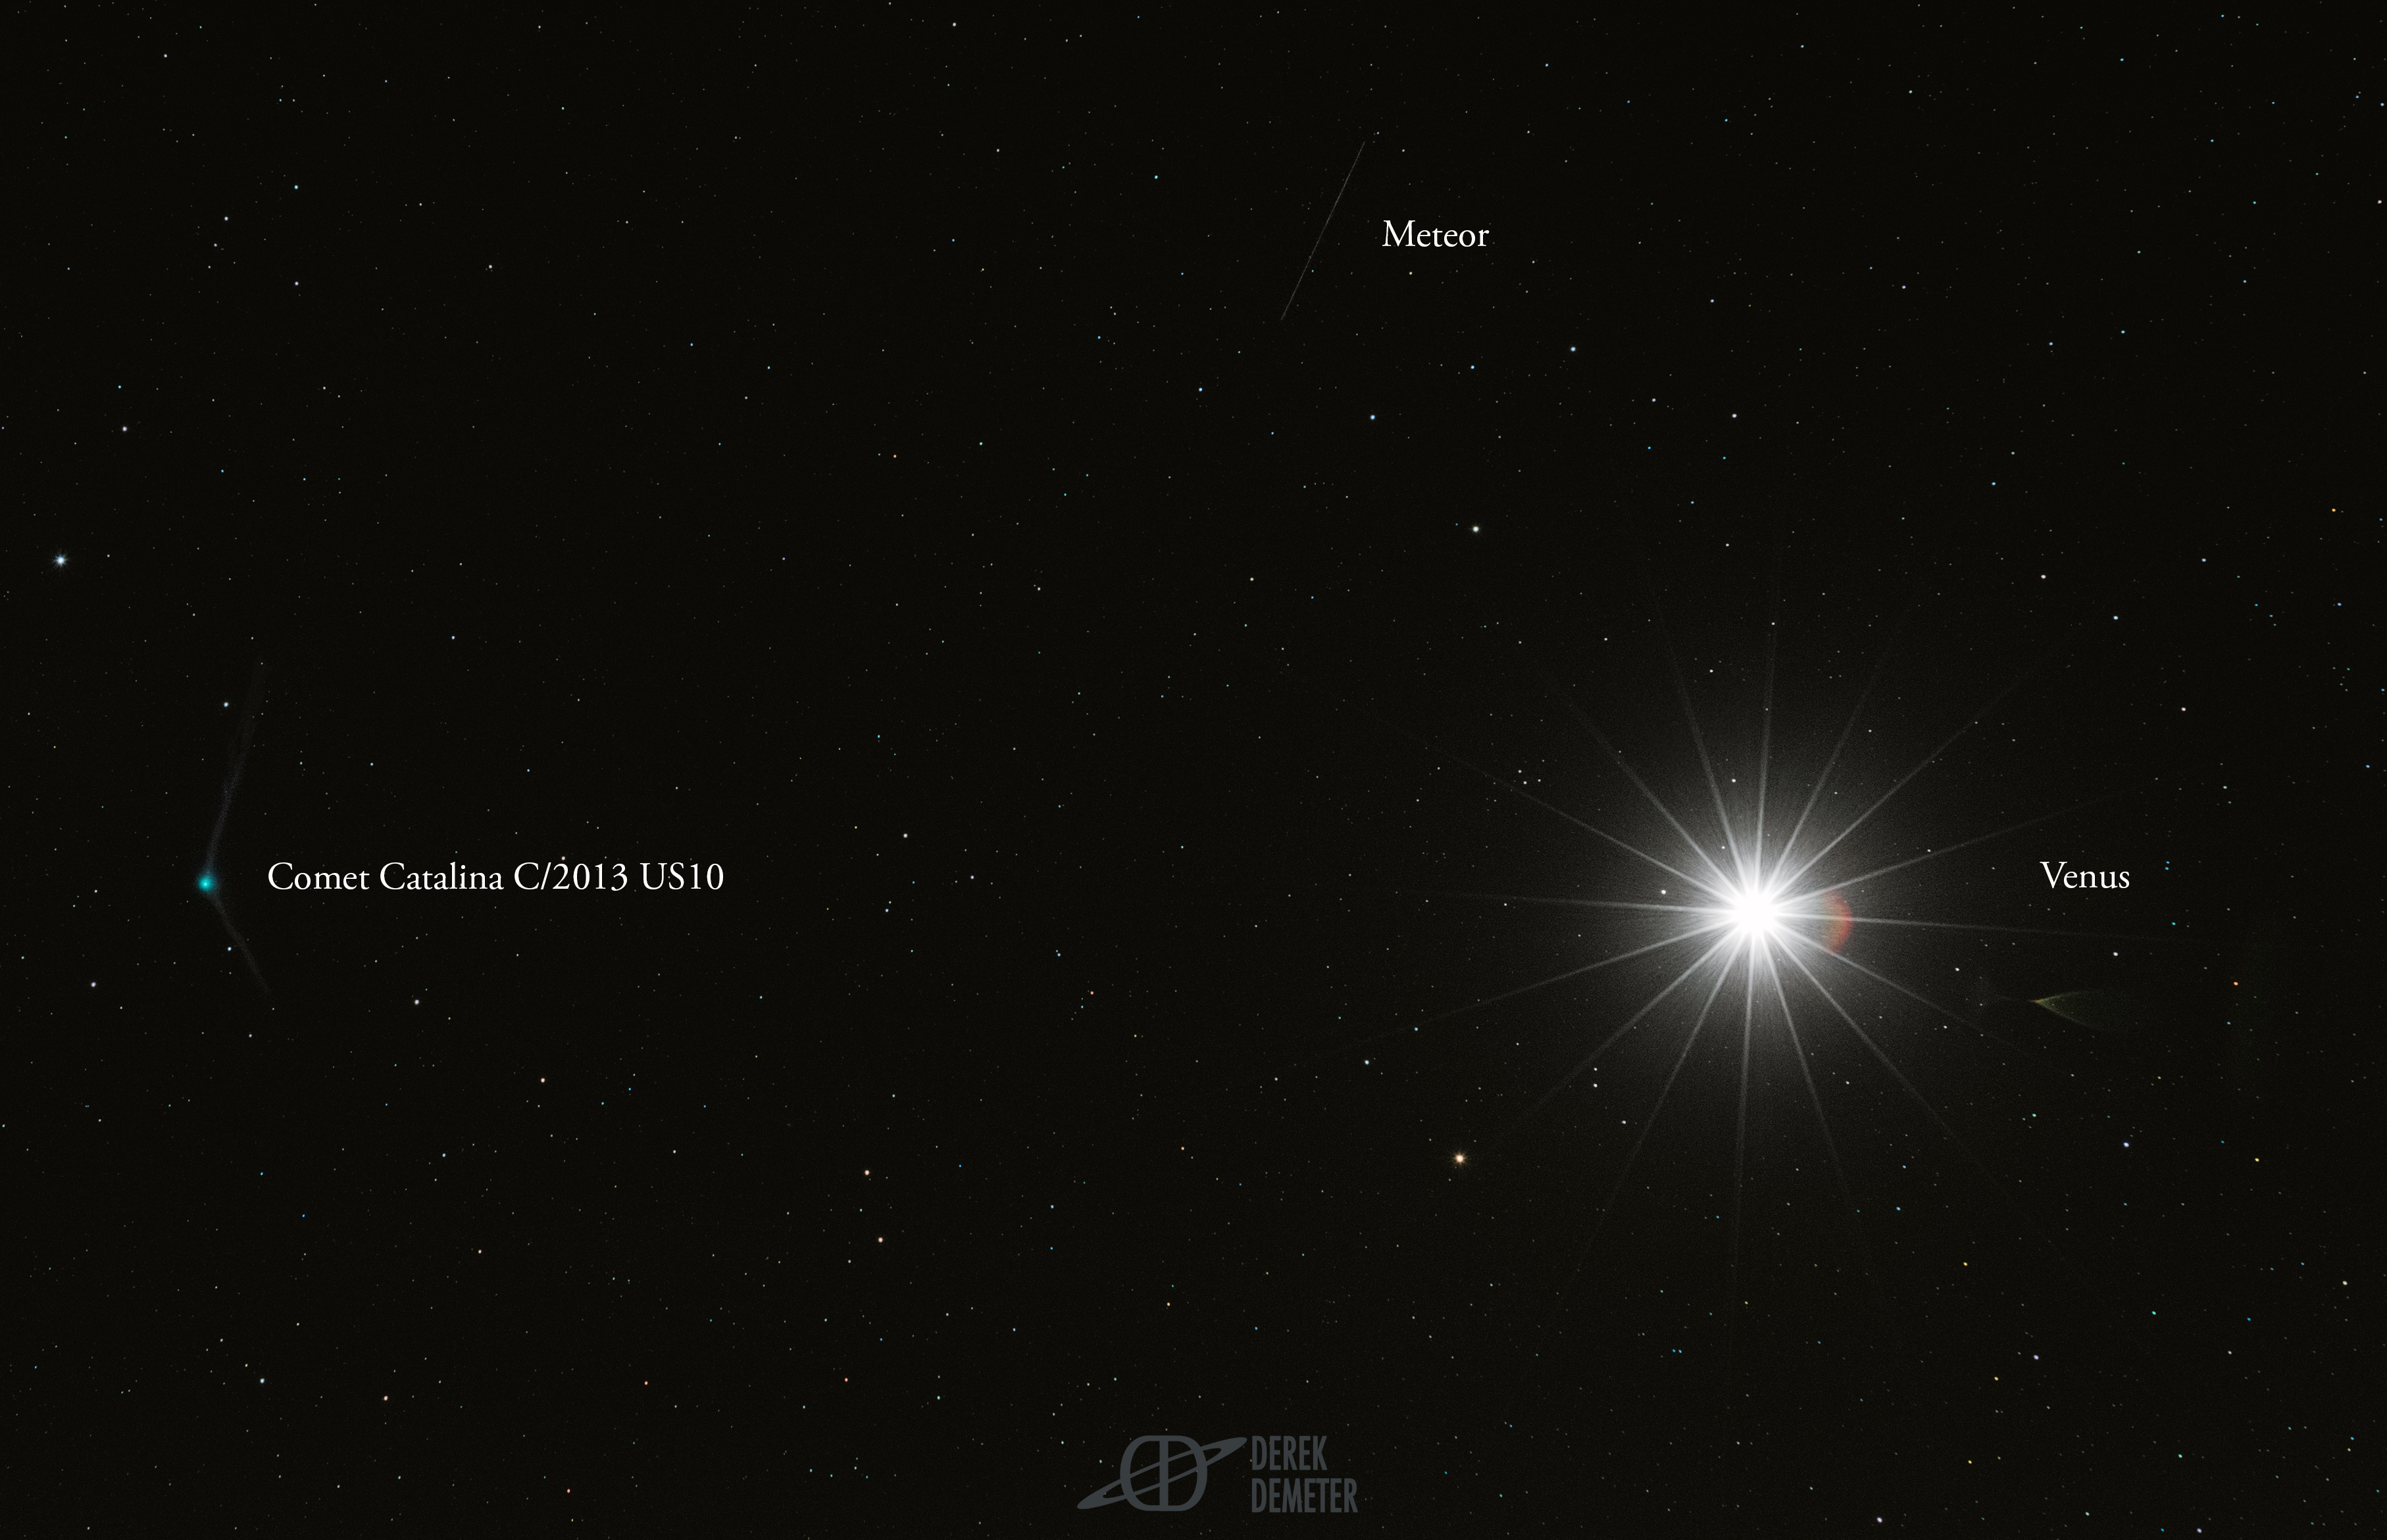 Stargazer Spots Comet Catalina, Meteor and Venus Together (Photo)